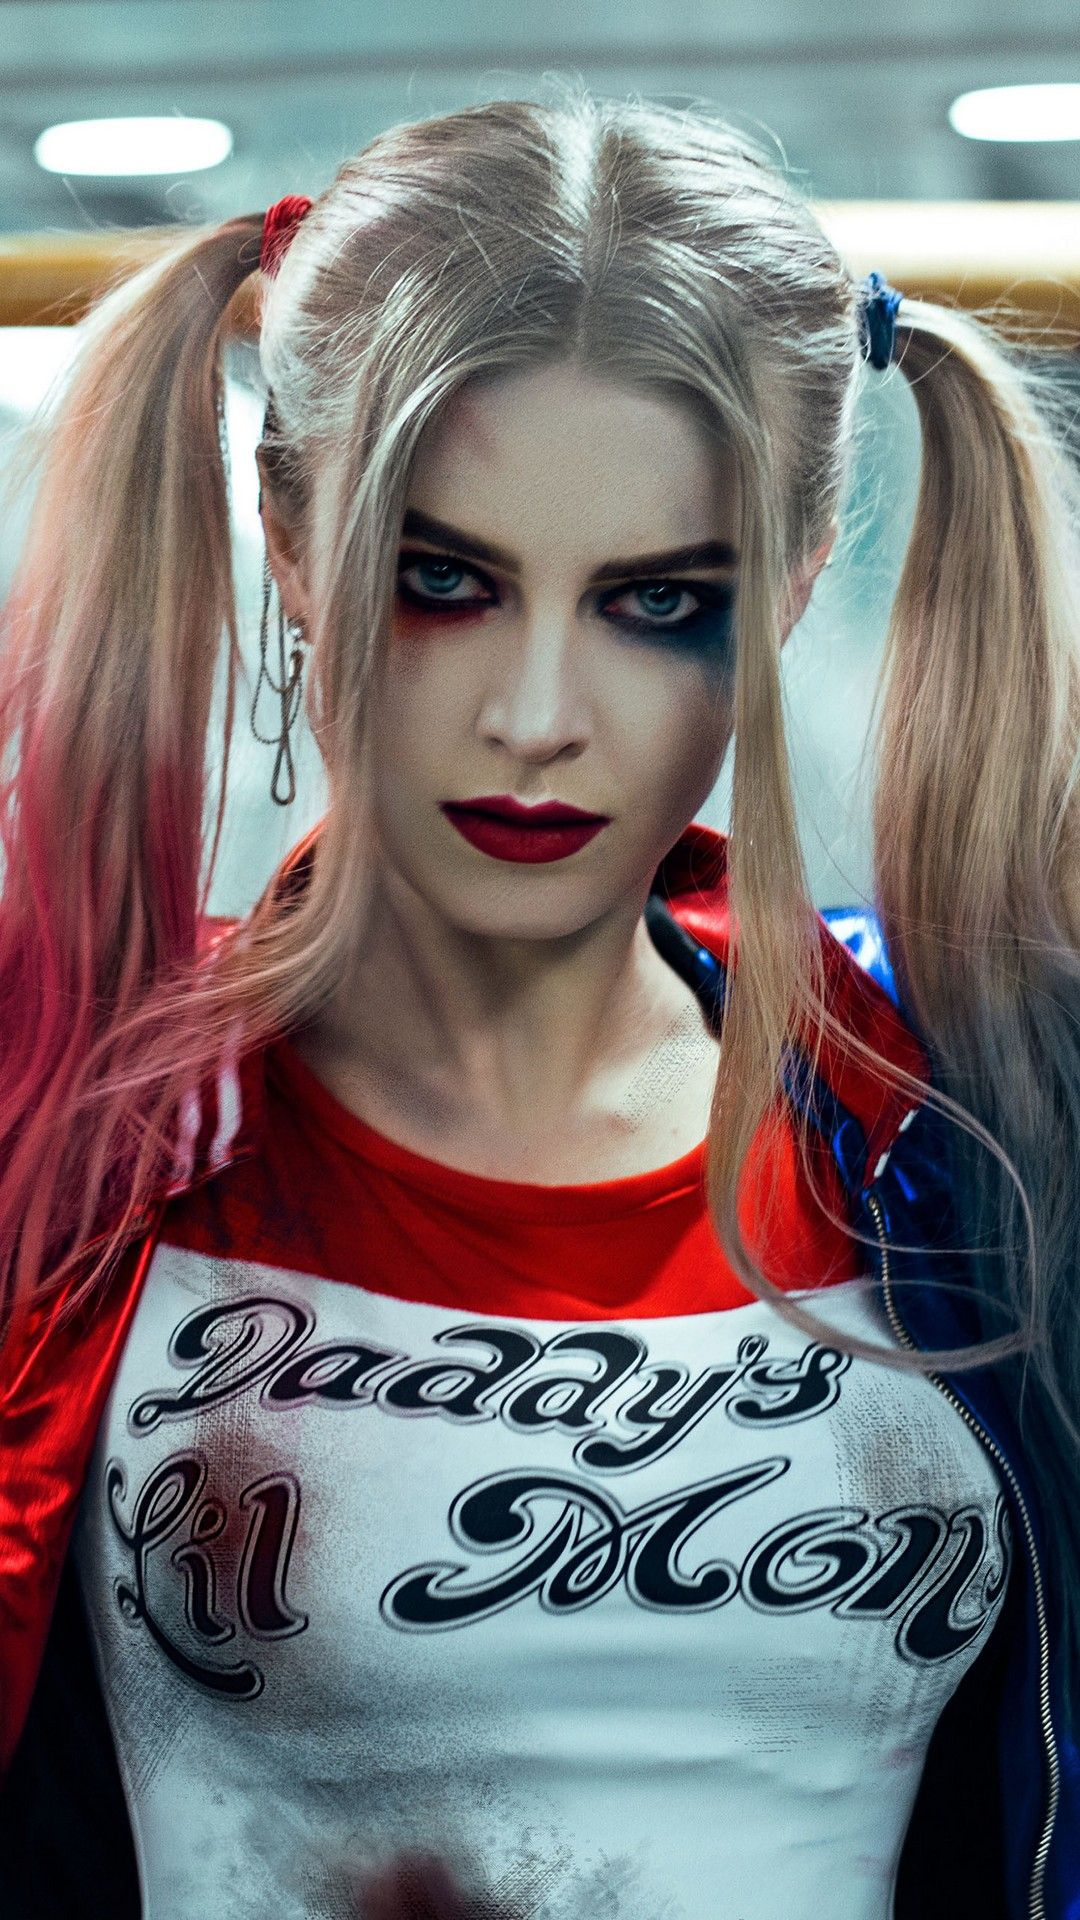 Wallpaper harley quinn makeup android best android - Harley quinn hd wallpapers for android ...